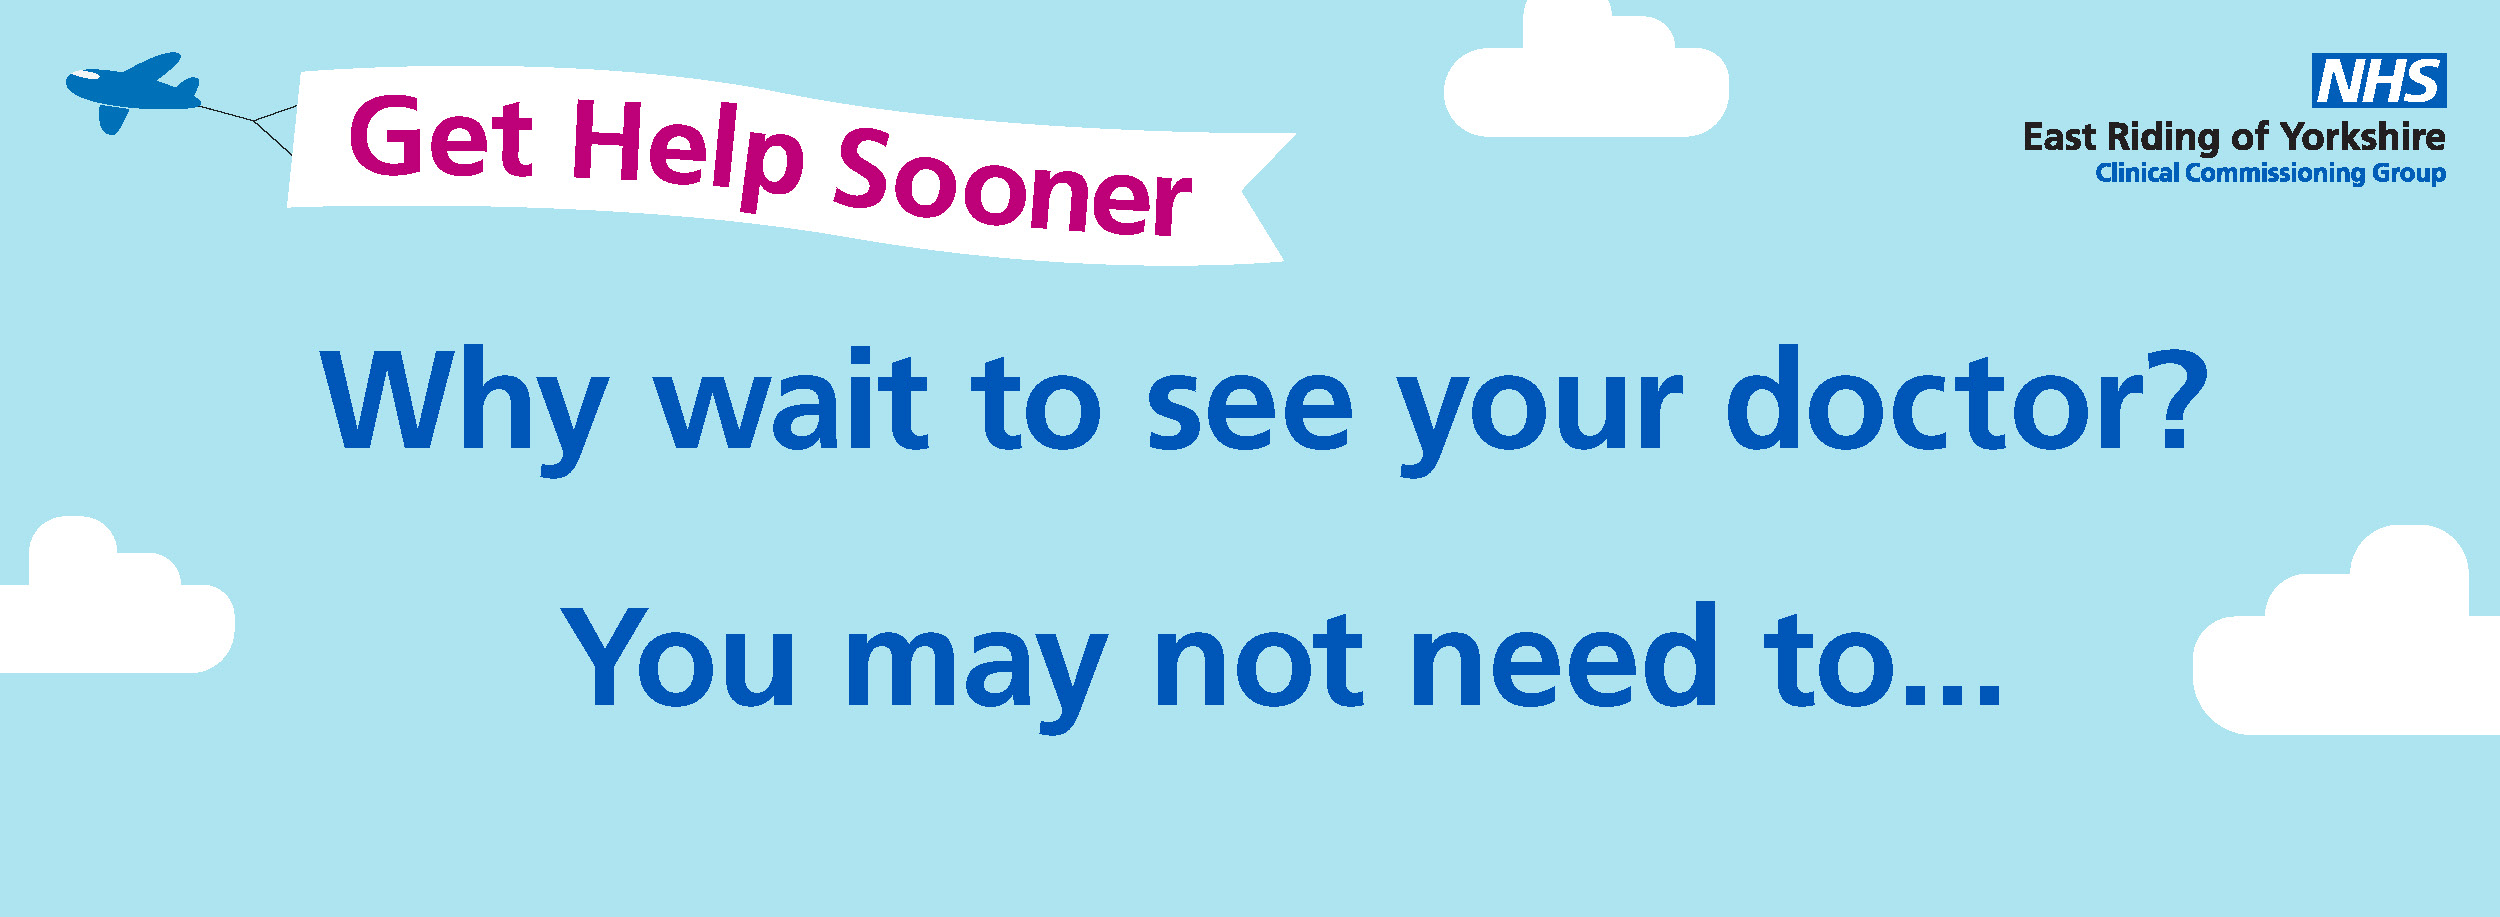 Get help sooner. Why wait to see your doctor? You may not need to...